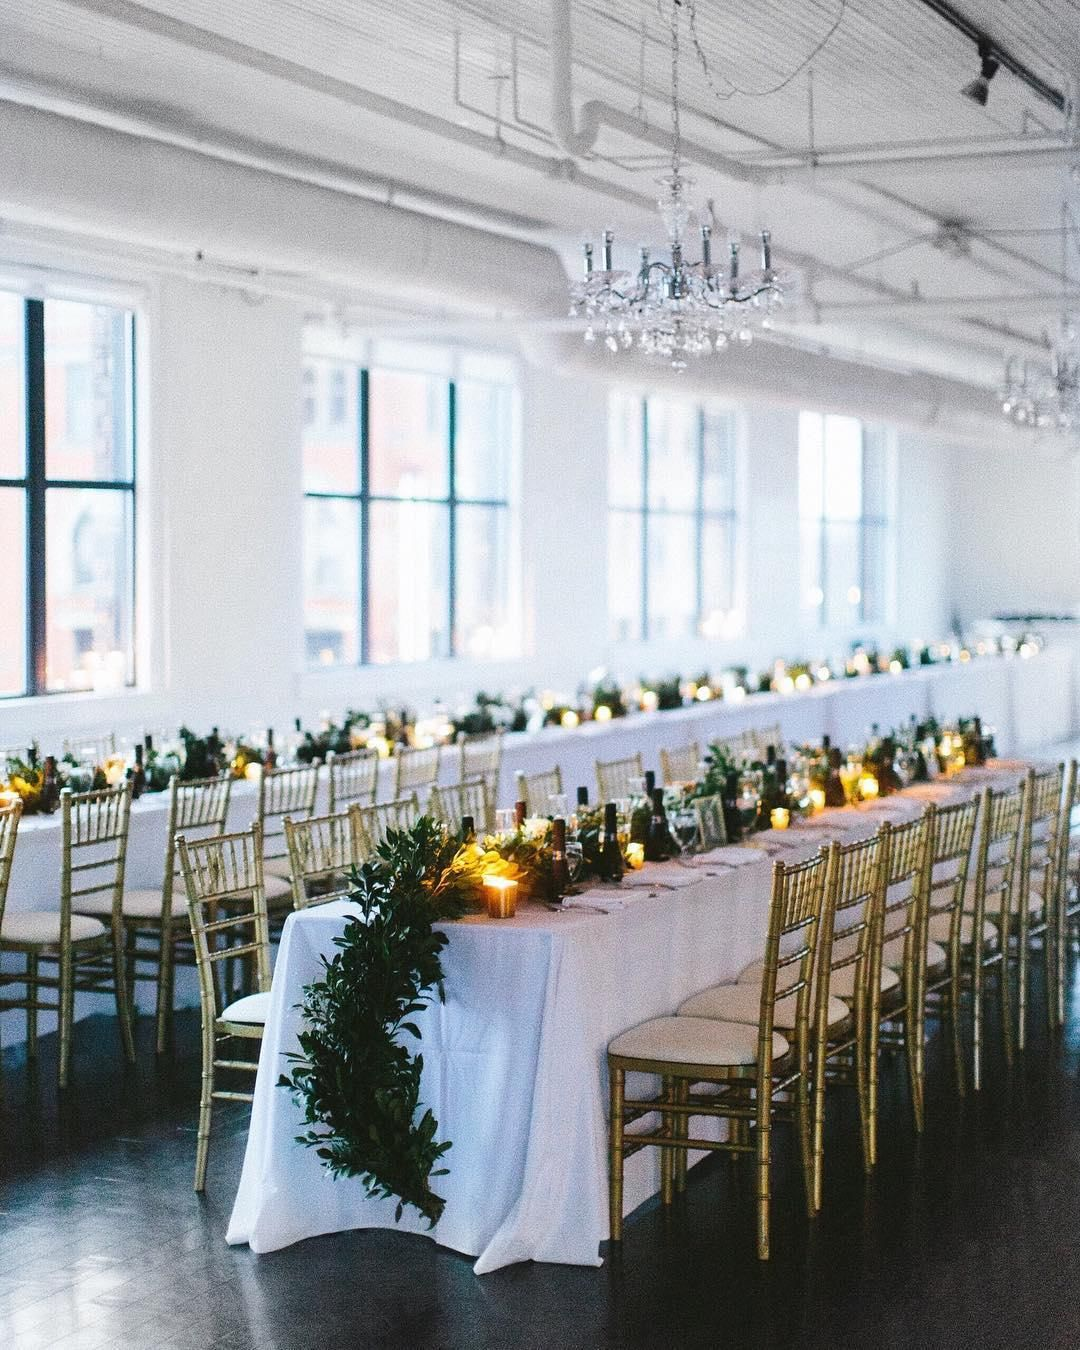 The Ultimate Guide To Enchanting Wedding Venues In Michigan Michigan Wedding Venues Enchanted Wedding Venues Wedding Venues